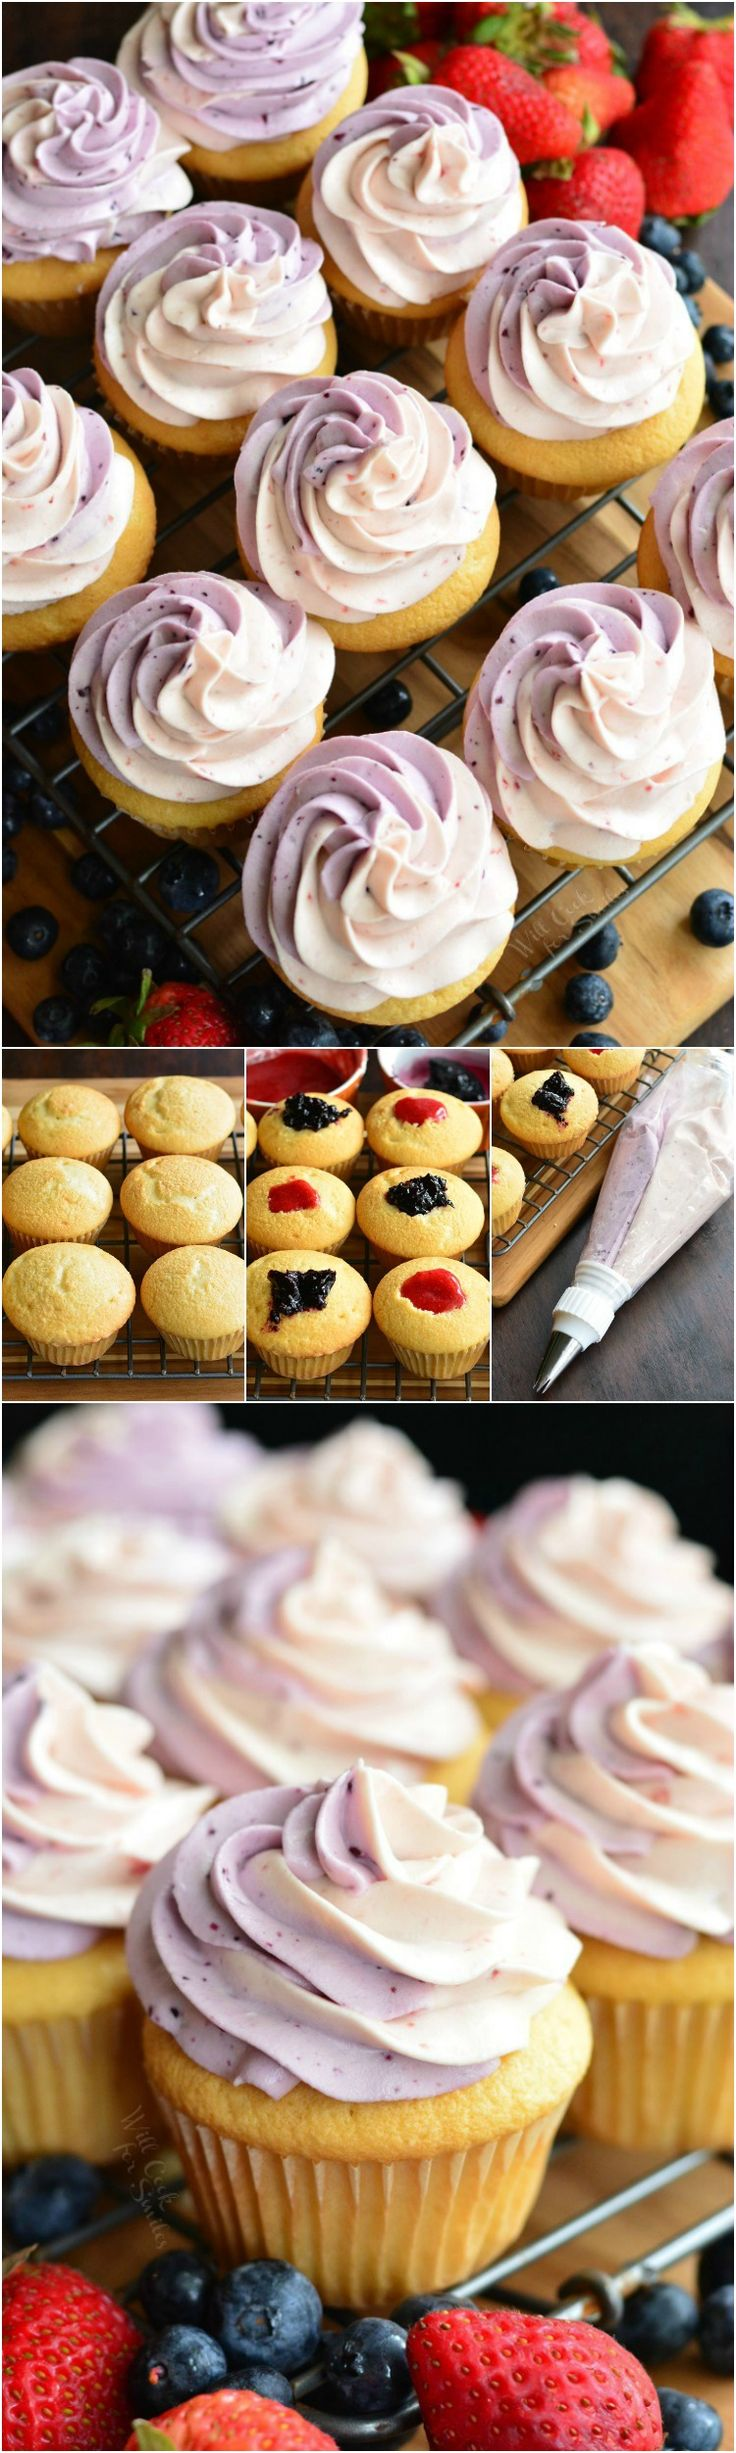 Berry Filled Cupcakes with Strawberry and Blueberry Marble Frosting